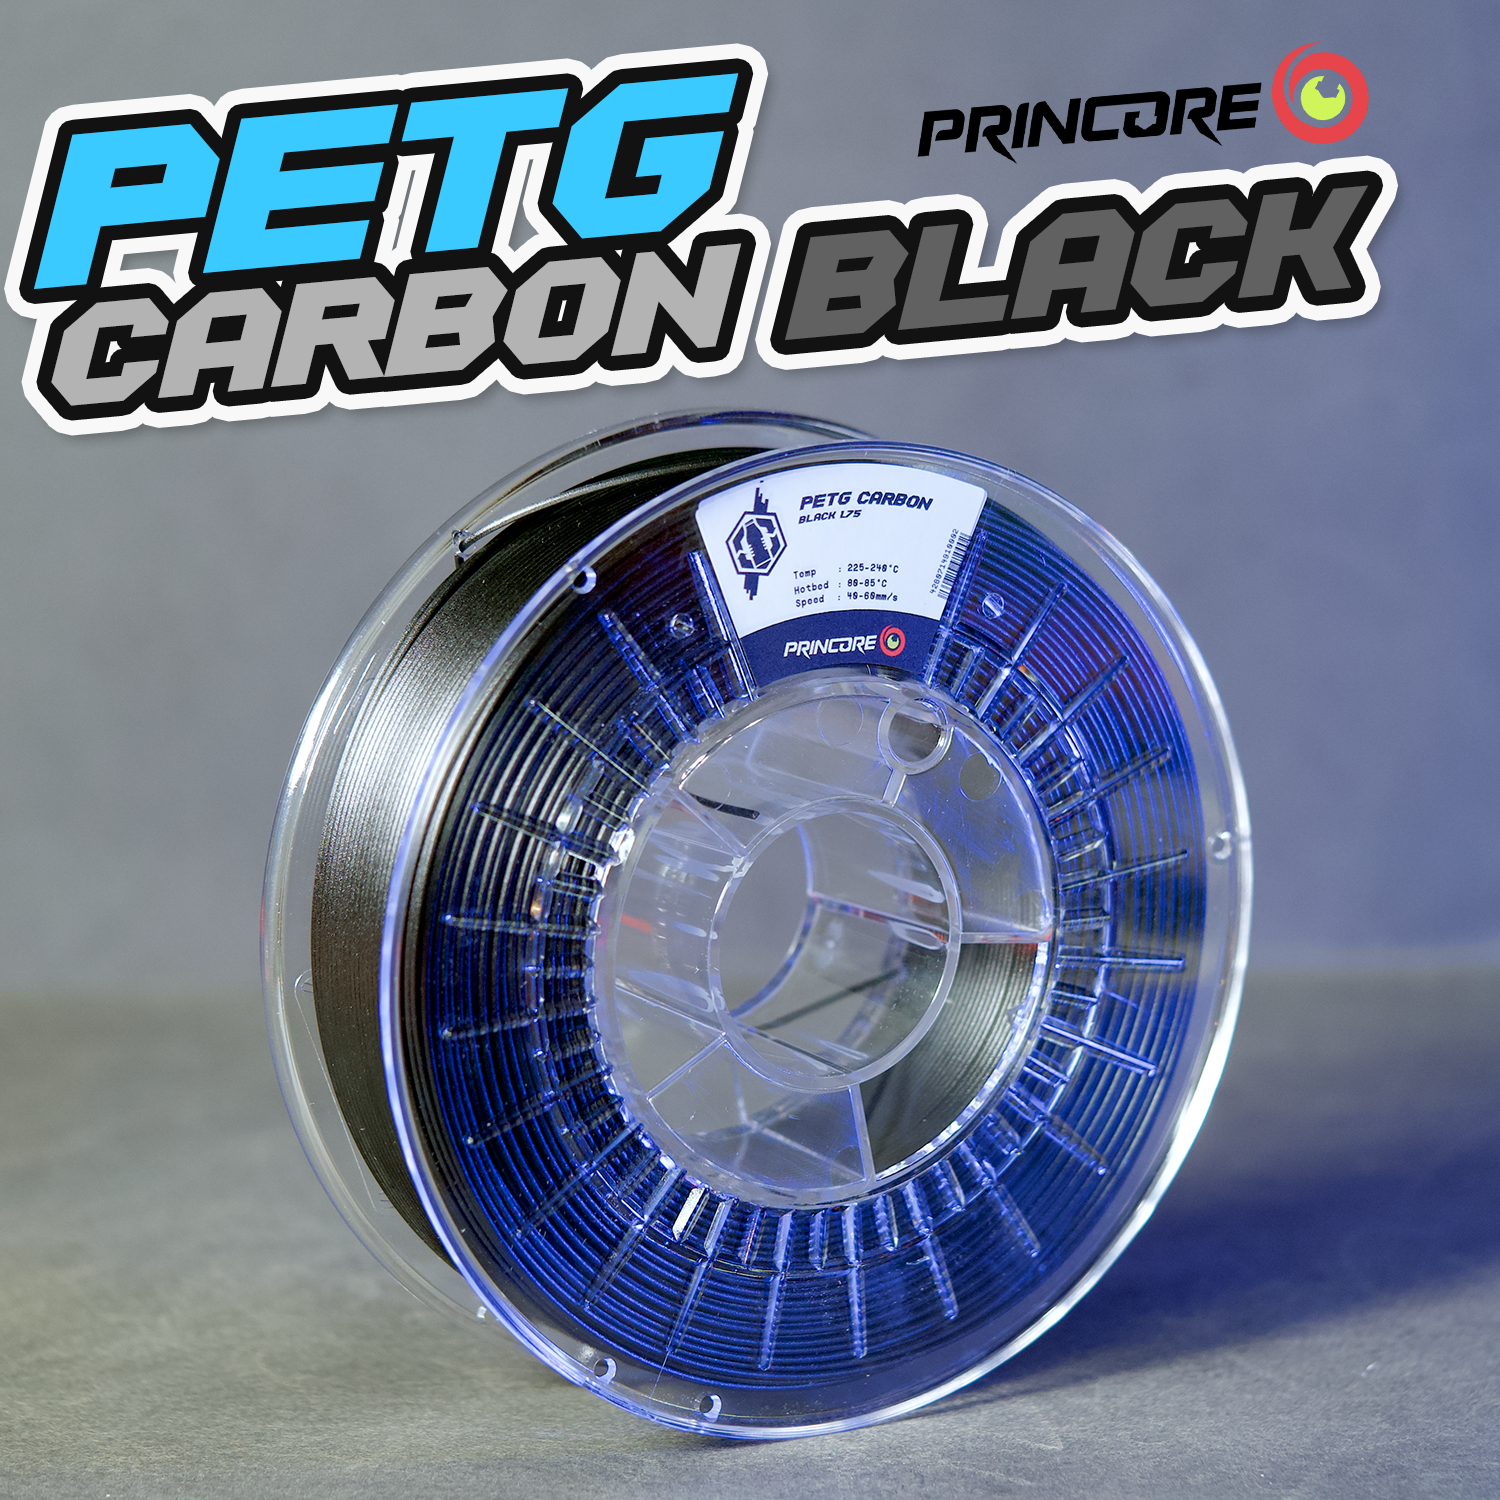 PRINCORE PETG CARBON - Black [1.75mm] (56,23€/Kilo)